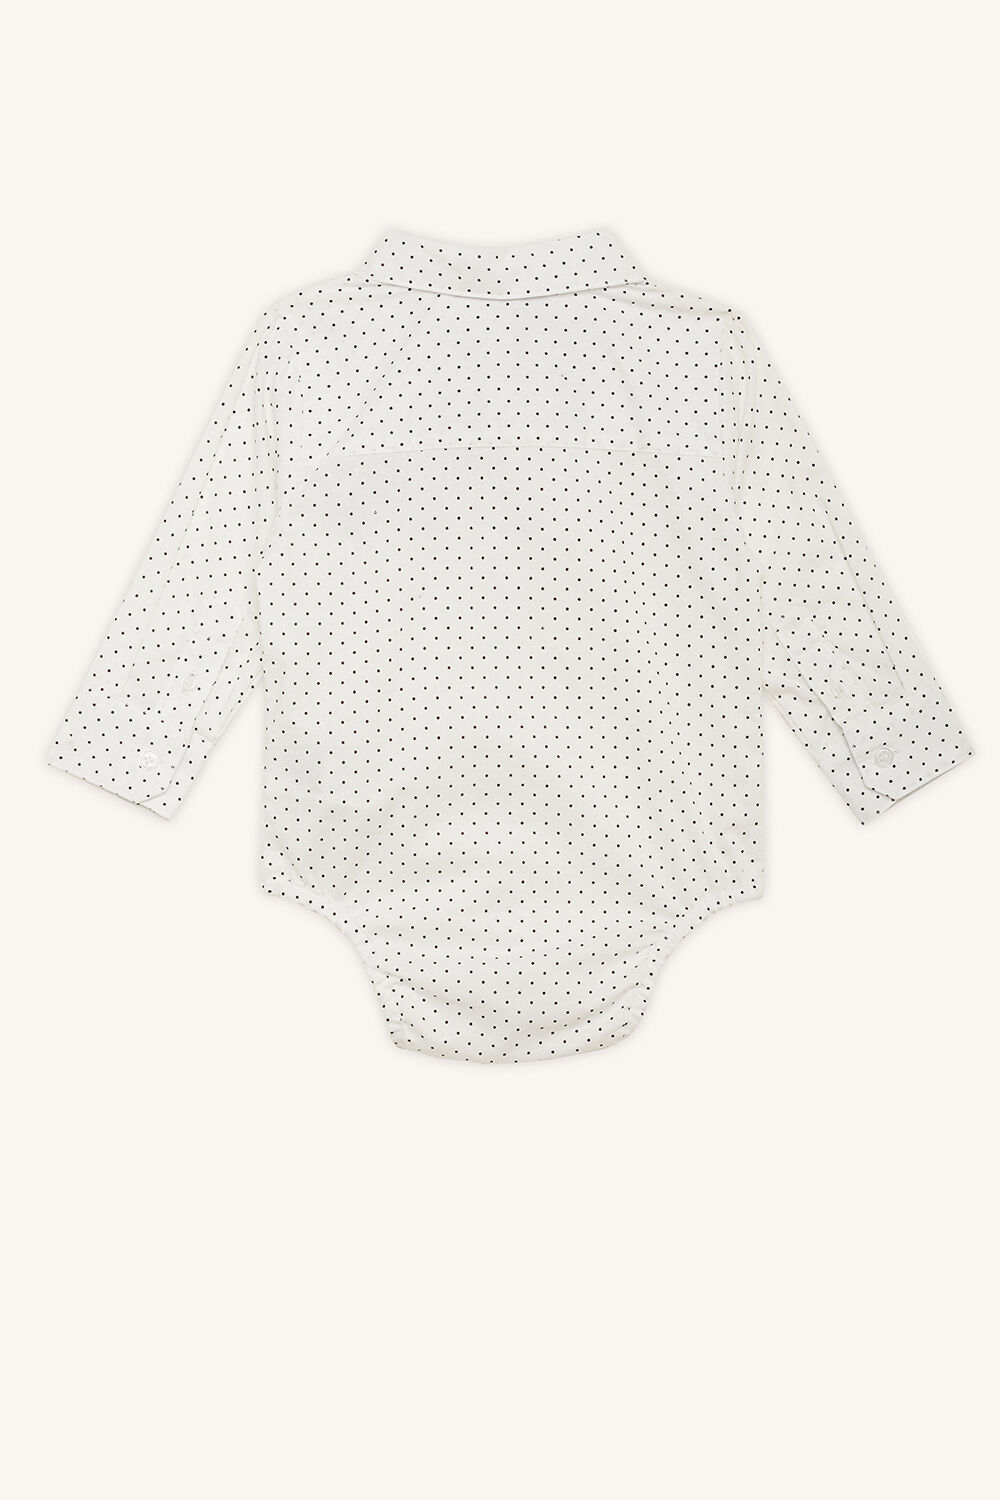 SPOT SHIRT GROW in colour BRIGHT WHITE